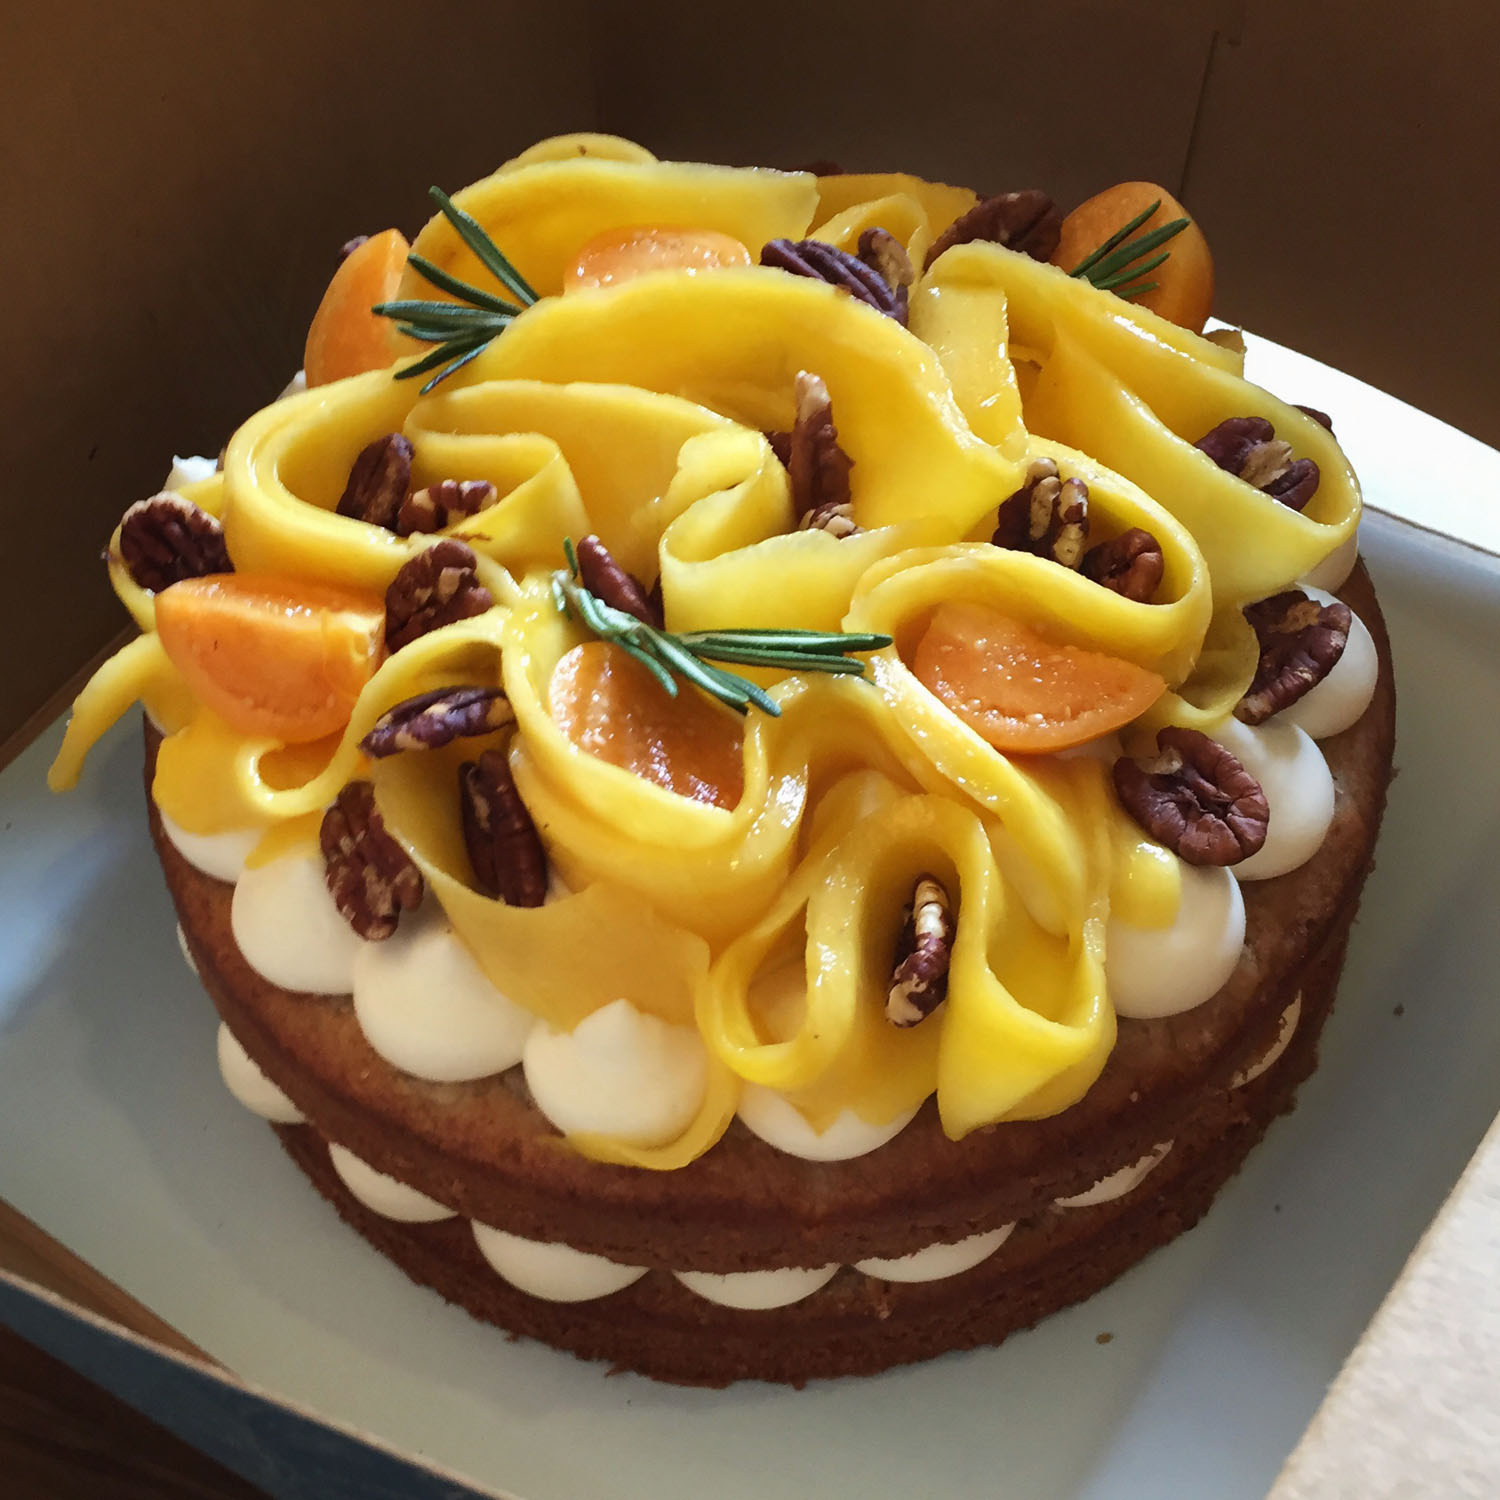 Hummingbird - Banana, pineapple, pecan cinnamon cake with cream cheese frosting. Topped with fresh mango and toasted pecan.7